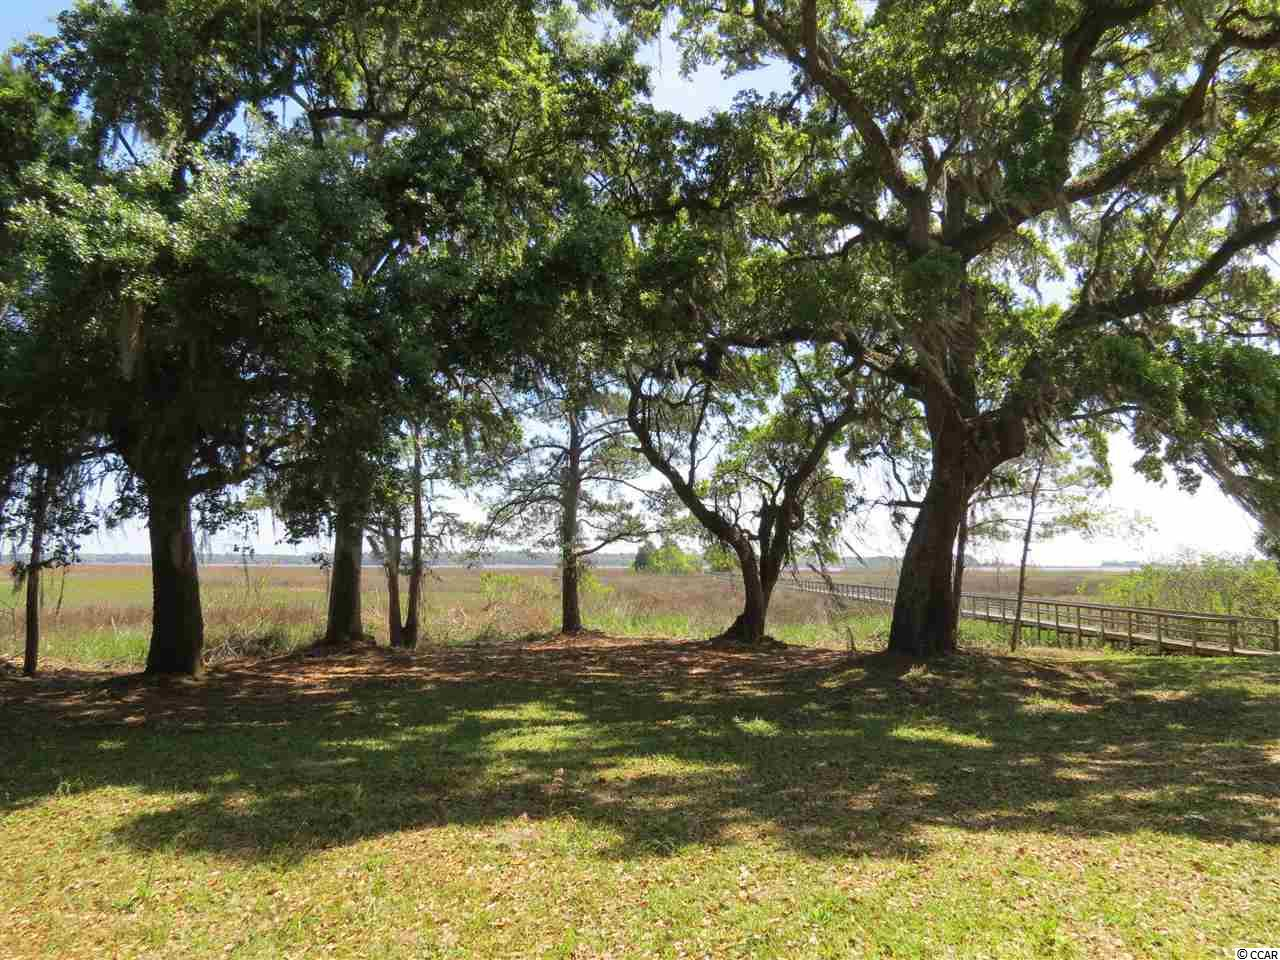 Whitehall Plantation, Georgetown. Gated Historic Plantation setting with only six 2+ acre home sites in the community. As you drive through the beautiful landscaped brick entrance and through the historic live oaks to the end of the road you will find this home site consisting of 18.7 acres with approx. 1.5 acres high ground and the balance in bay marsh with a navigable creek and dock. Beautiful views of the bay, Intracoastal Waterway, views of the Waccamaw River Bridge in the distance and views of Belle Isle Marina. Whitehall Plantation offers a community boardwalk out into Winyah Bay with a floating dock.